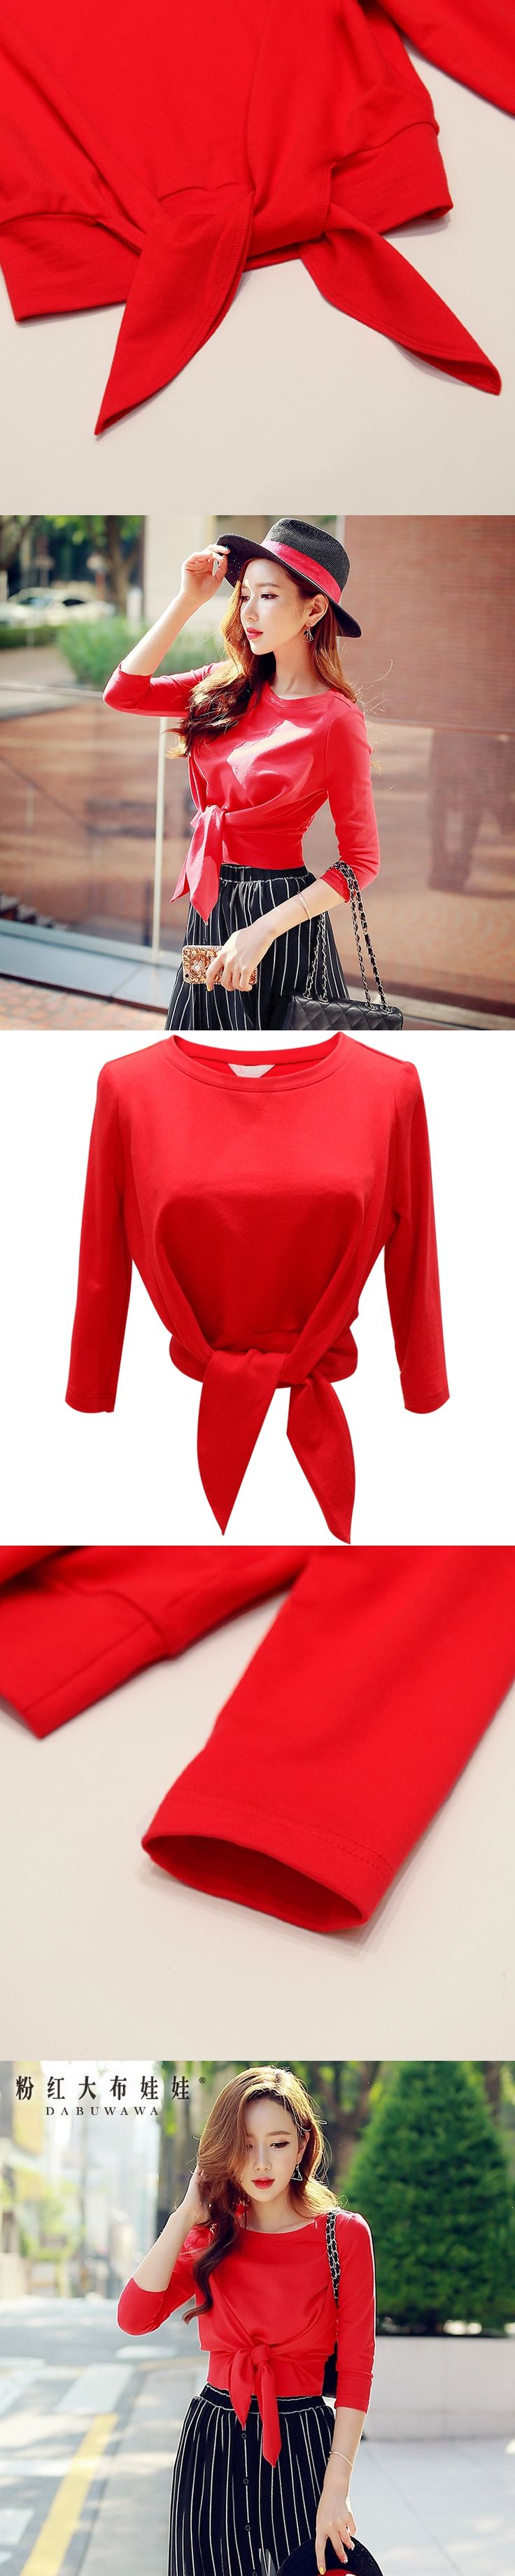 t-shirt autumn 2017 high quality cotton new fashion round neck casual three quarter sleeved solid red short top women